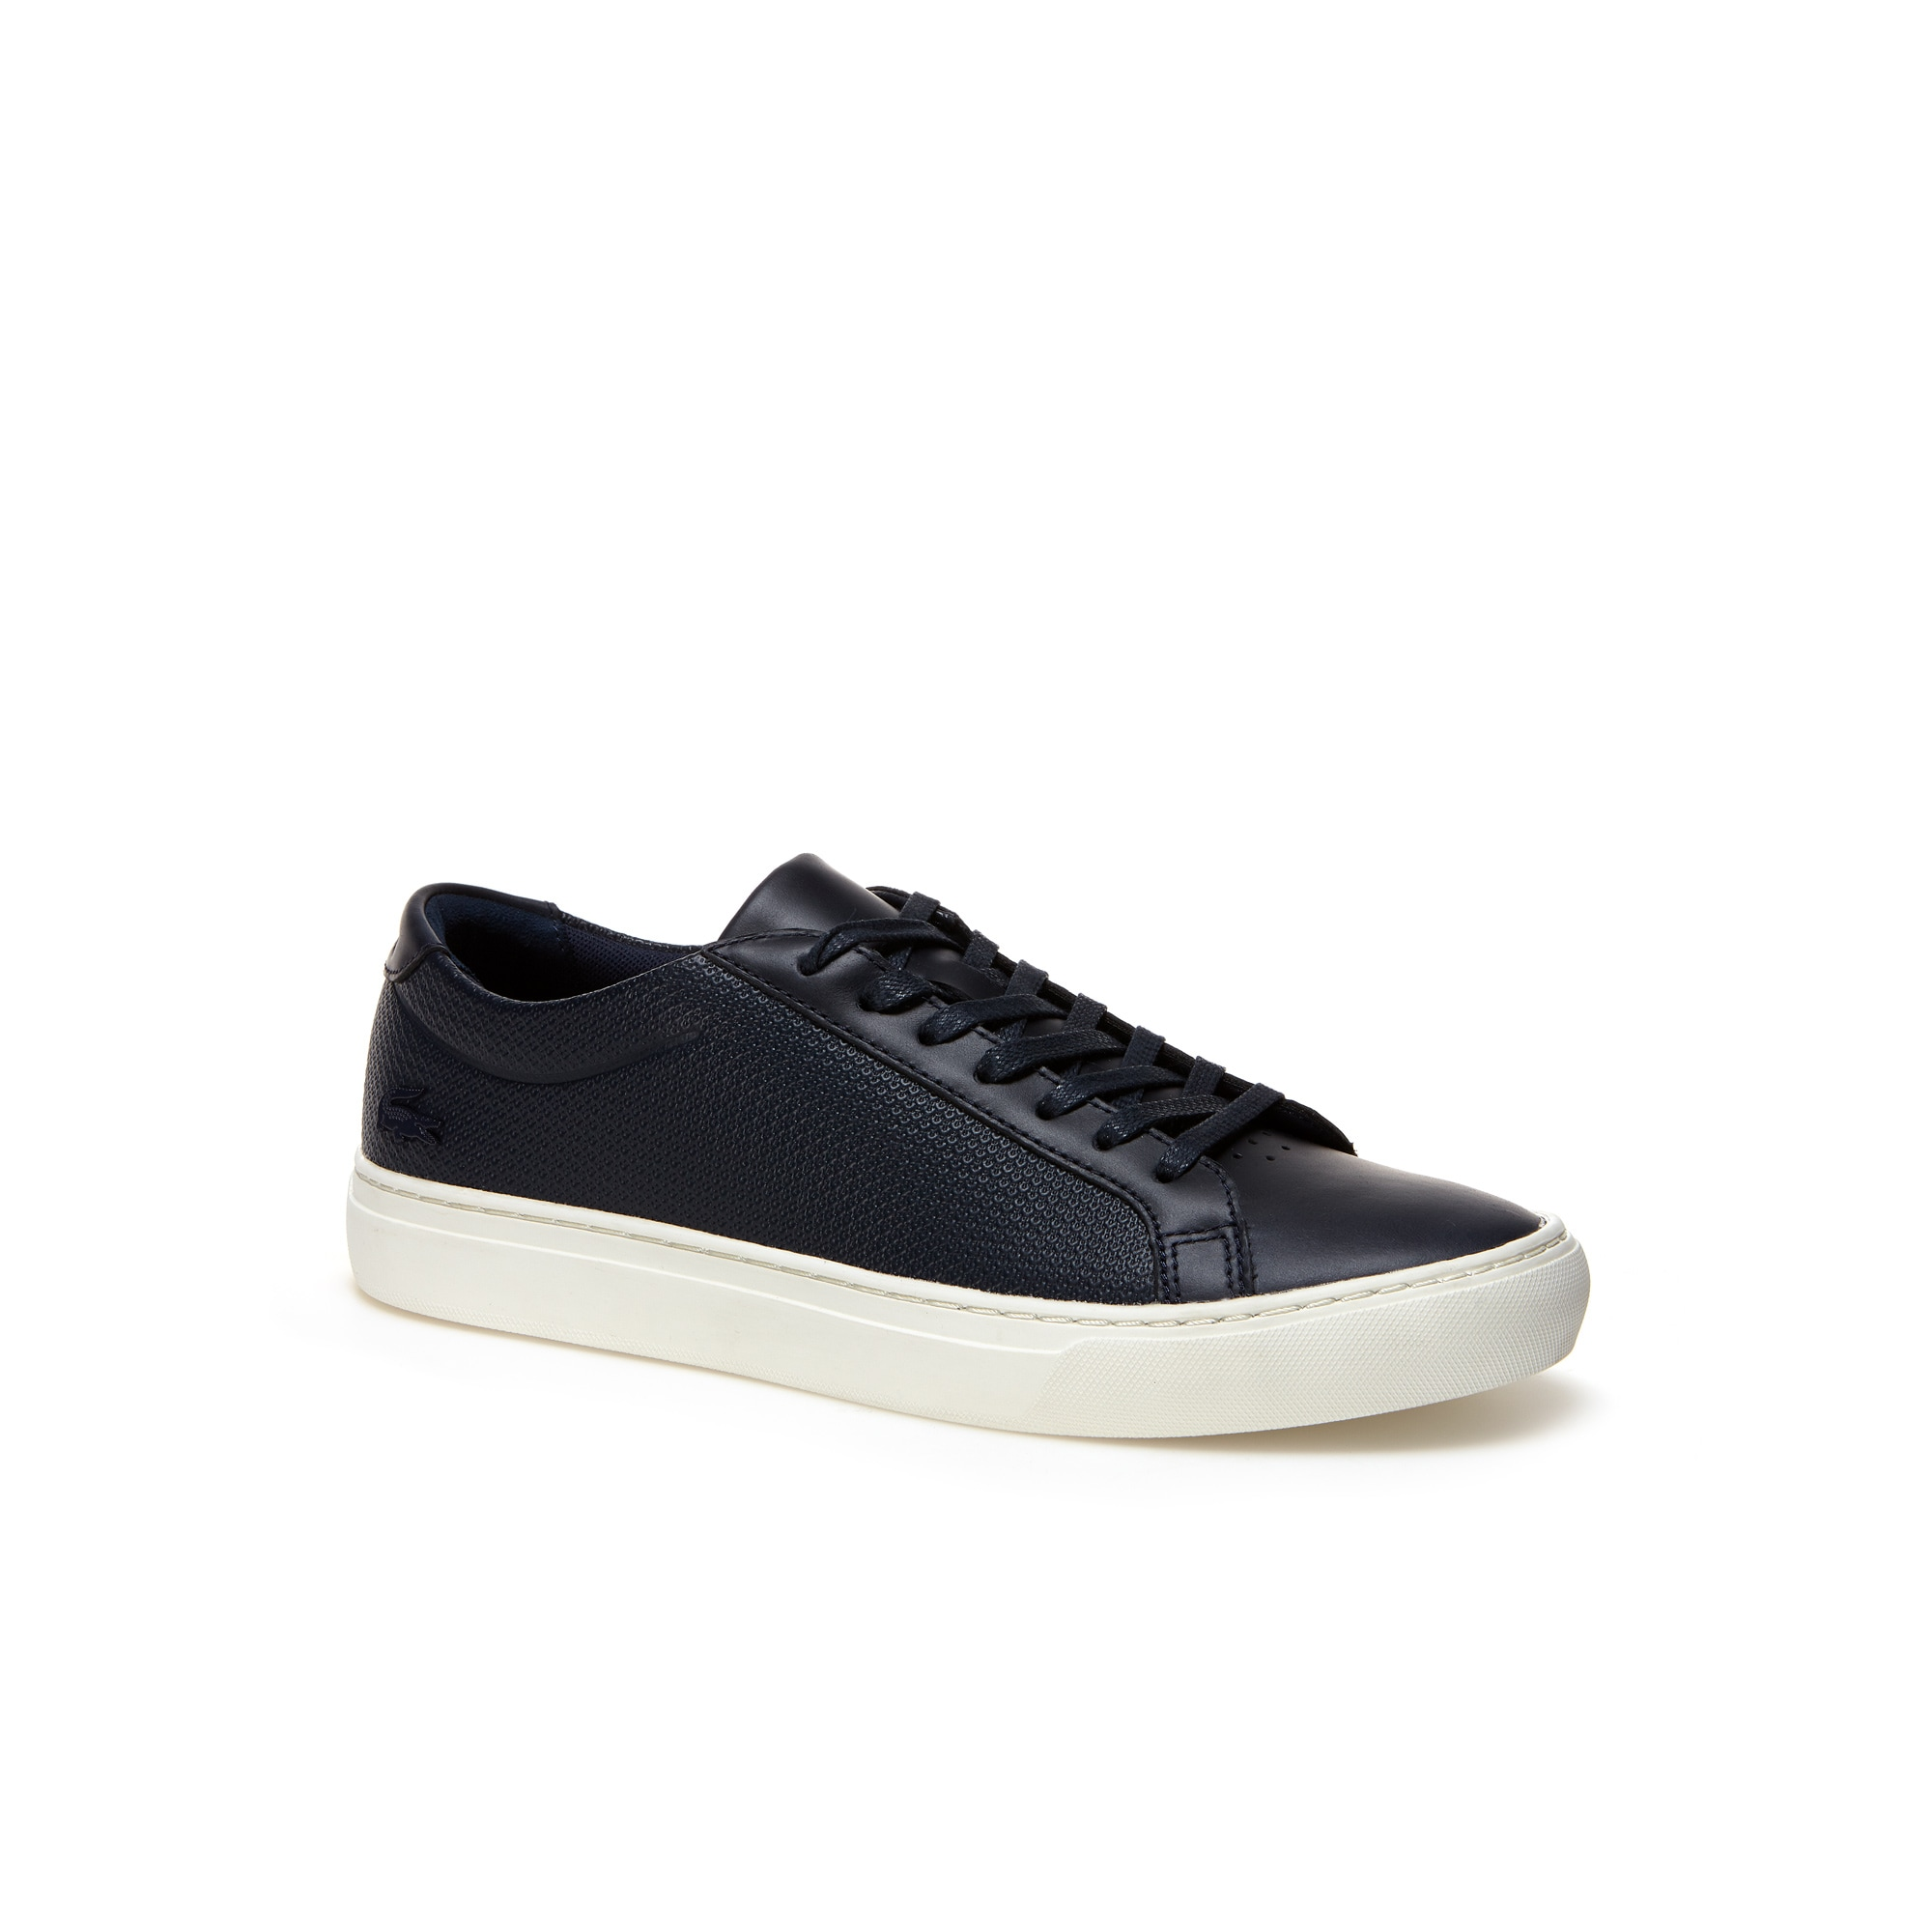 846a12b36 + 1 color. 50% off. Men s L.12.12 Leather Trainers. 360.00 SAR. 720.00 SAR